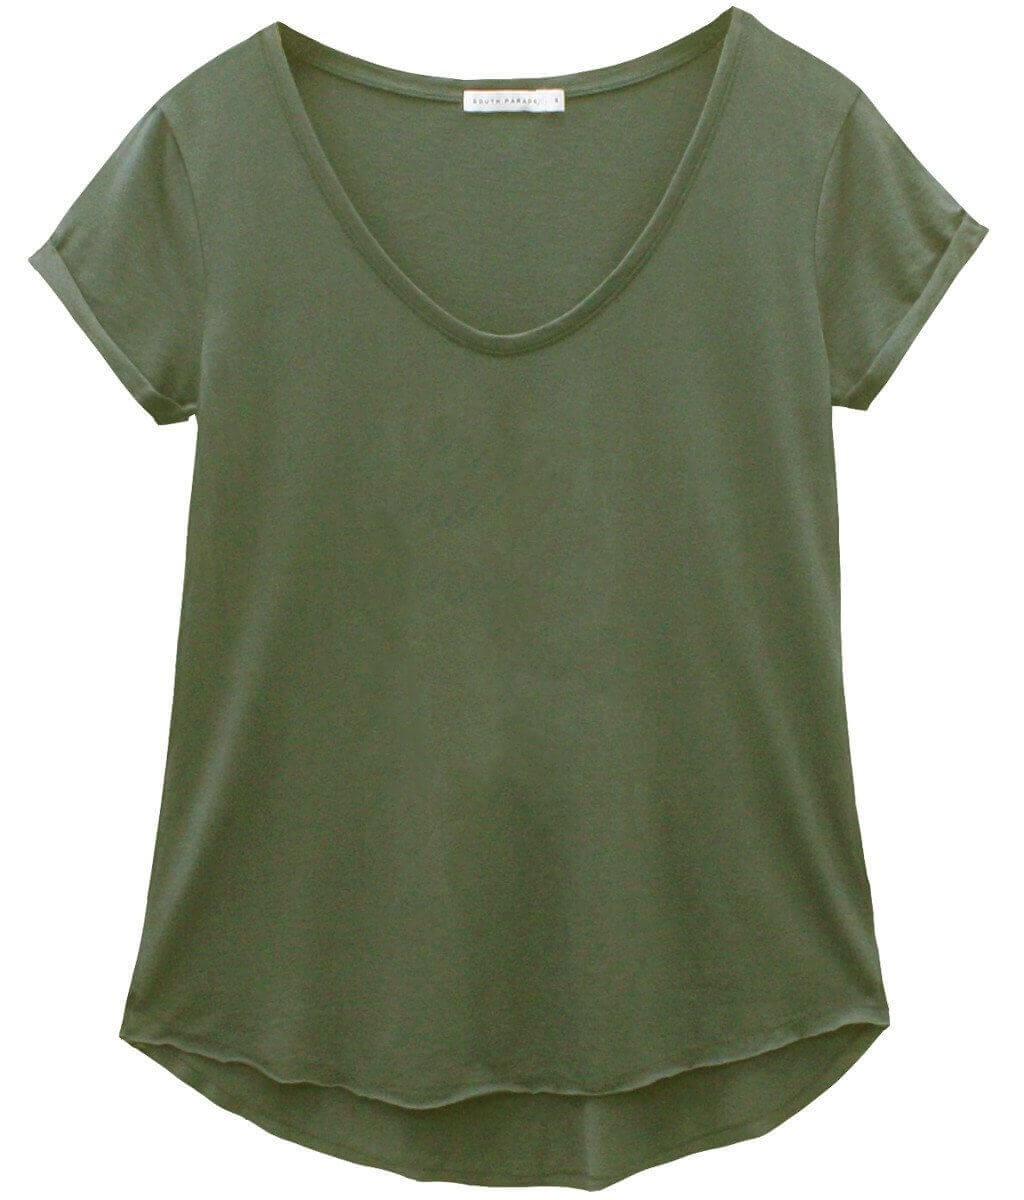 Valerie - Basic V-neck Tee - Army Green